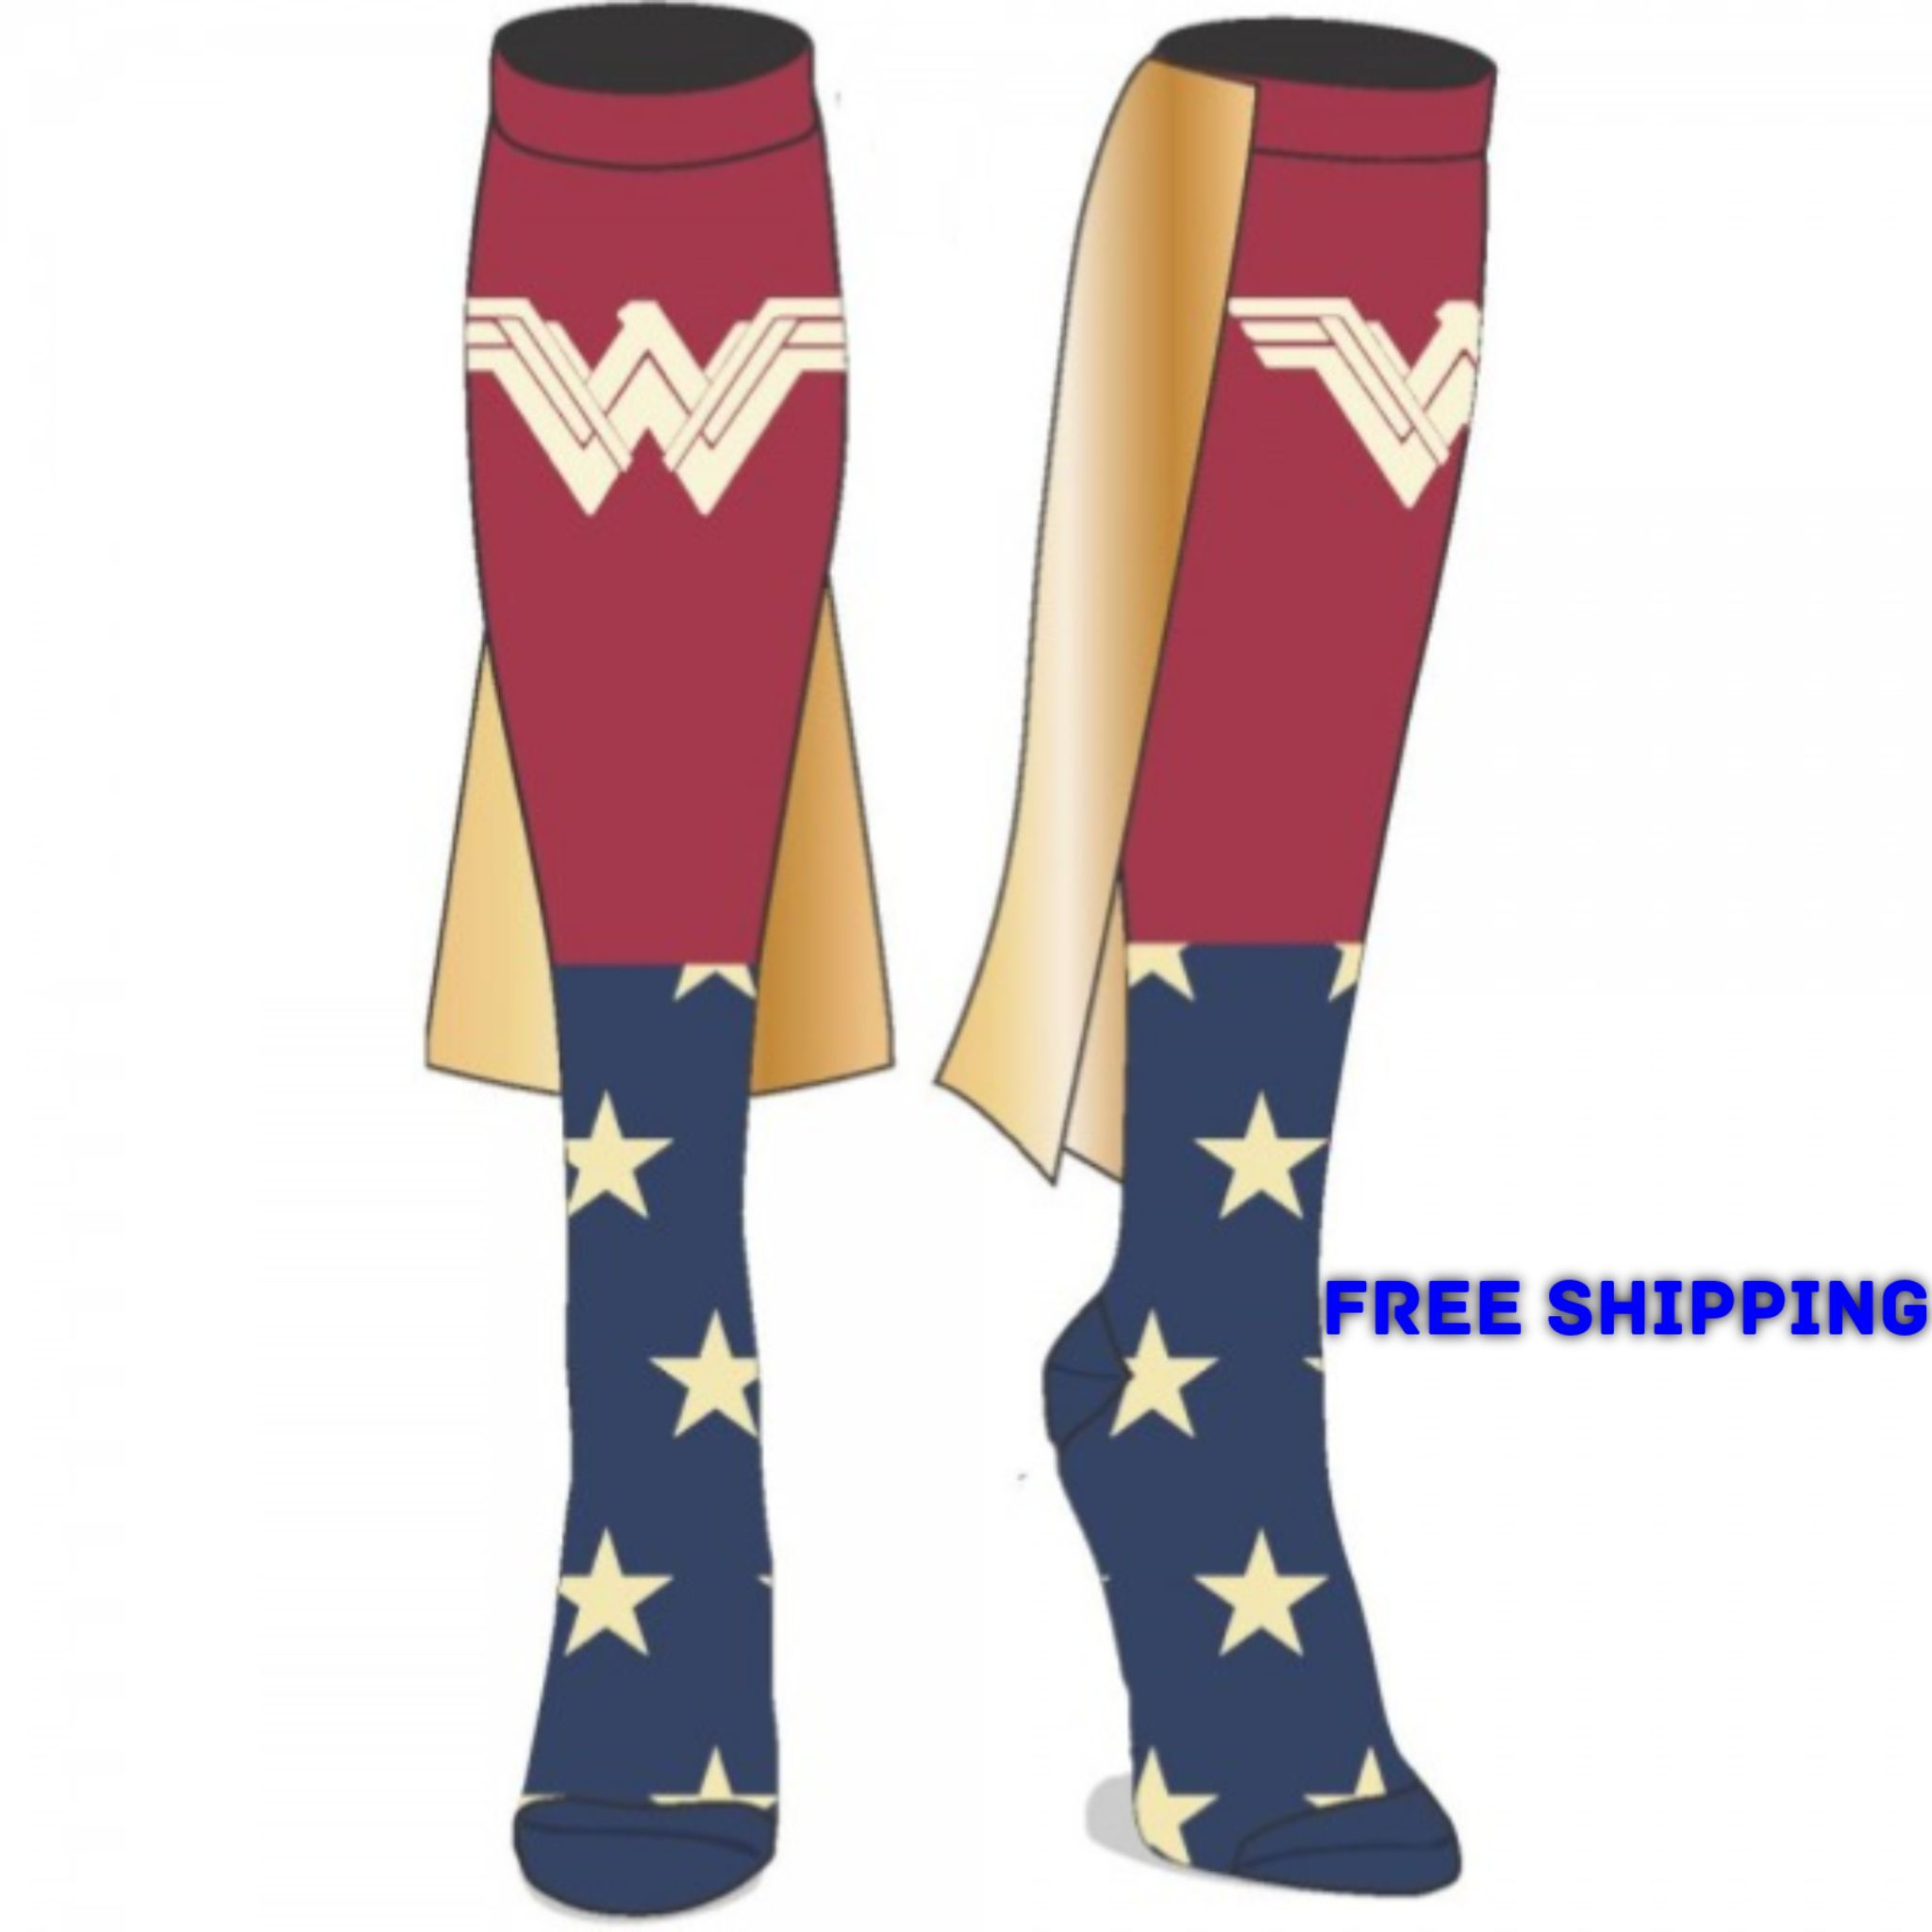 a17d7909c DC Comics Wonder Woman Movie Caped Knee High Socks NEW Licensed ...